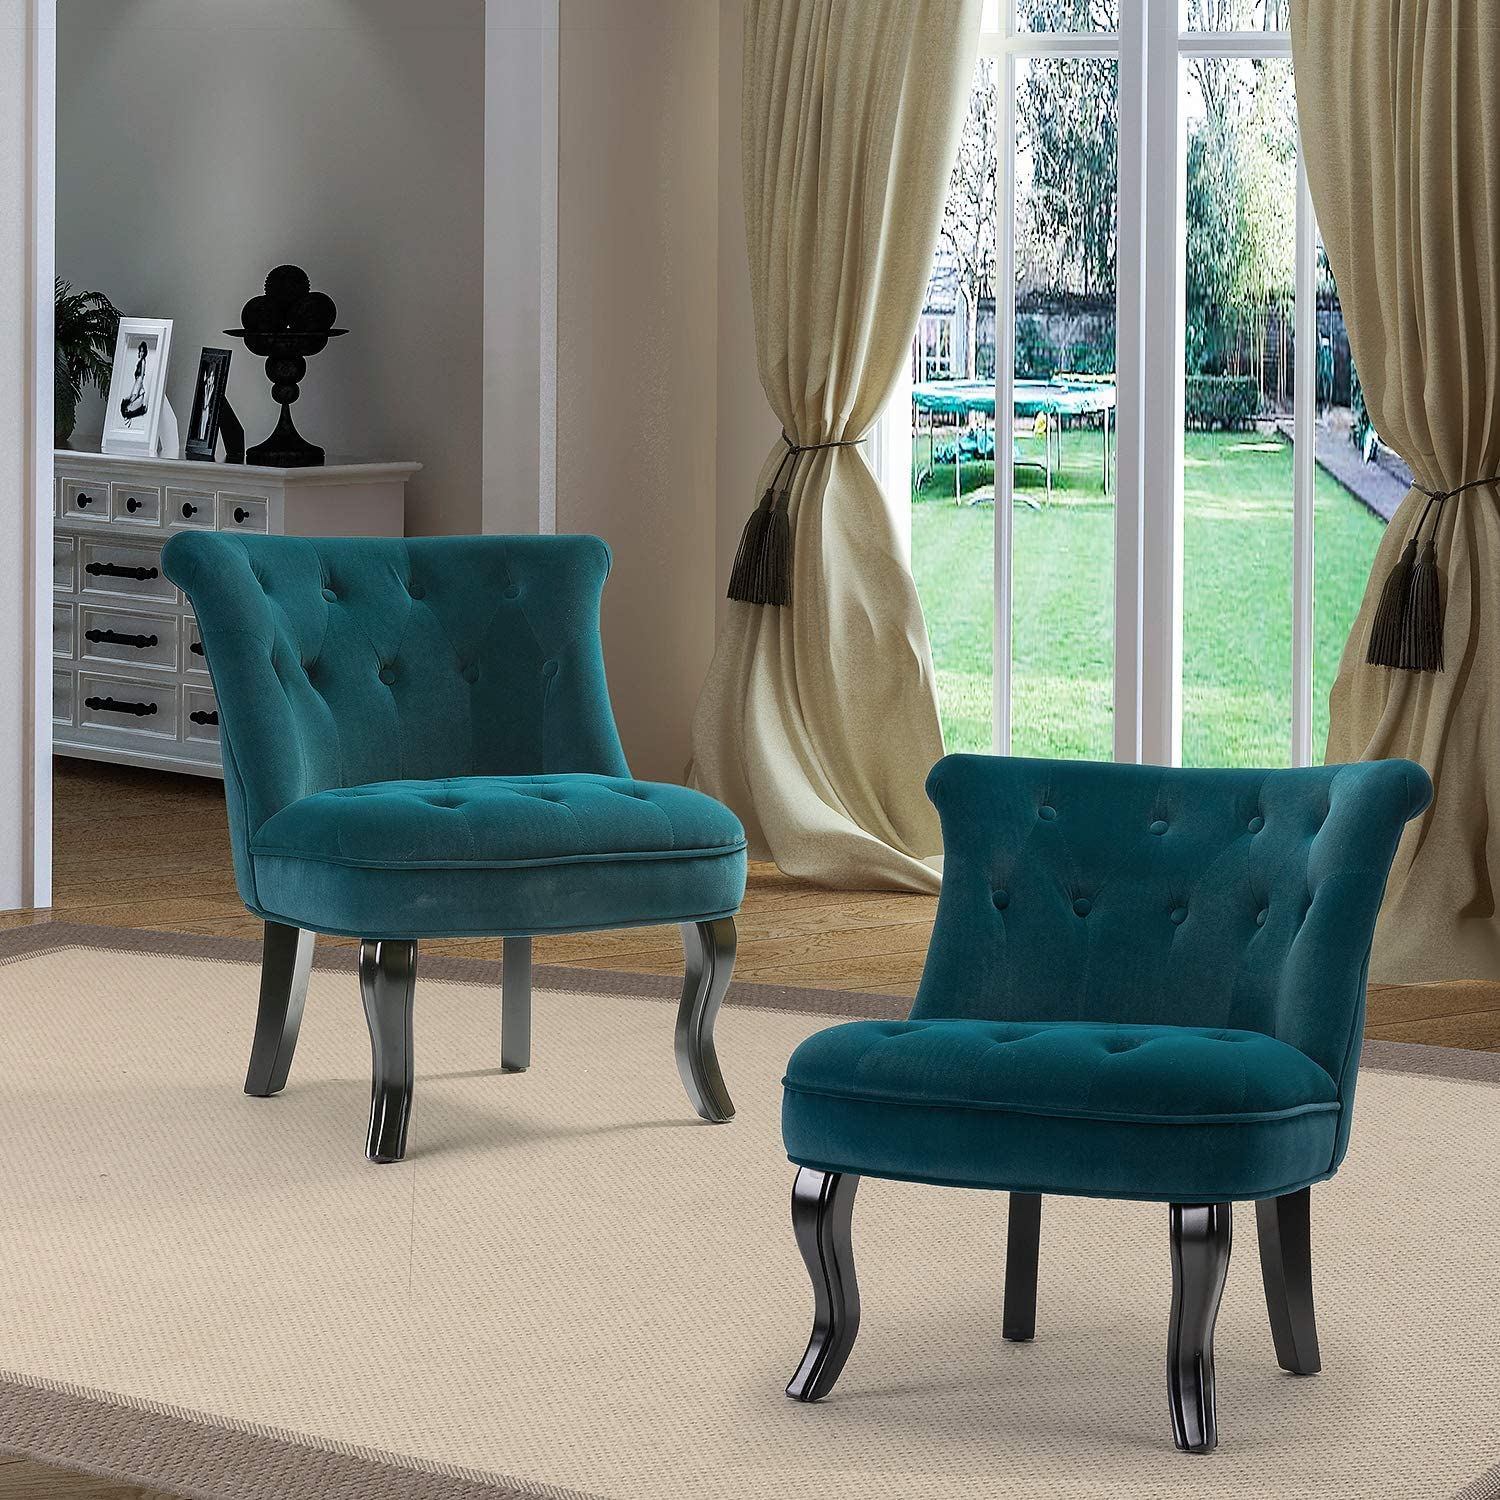 Aegean Blue Blue Upholstered Modern Chair//Jane Tufted Velvet Armless Accent Chair with Black Curved Legs